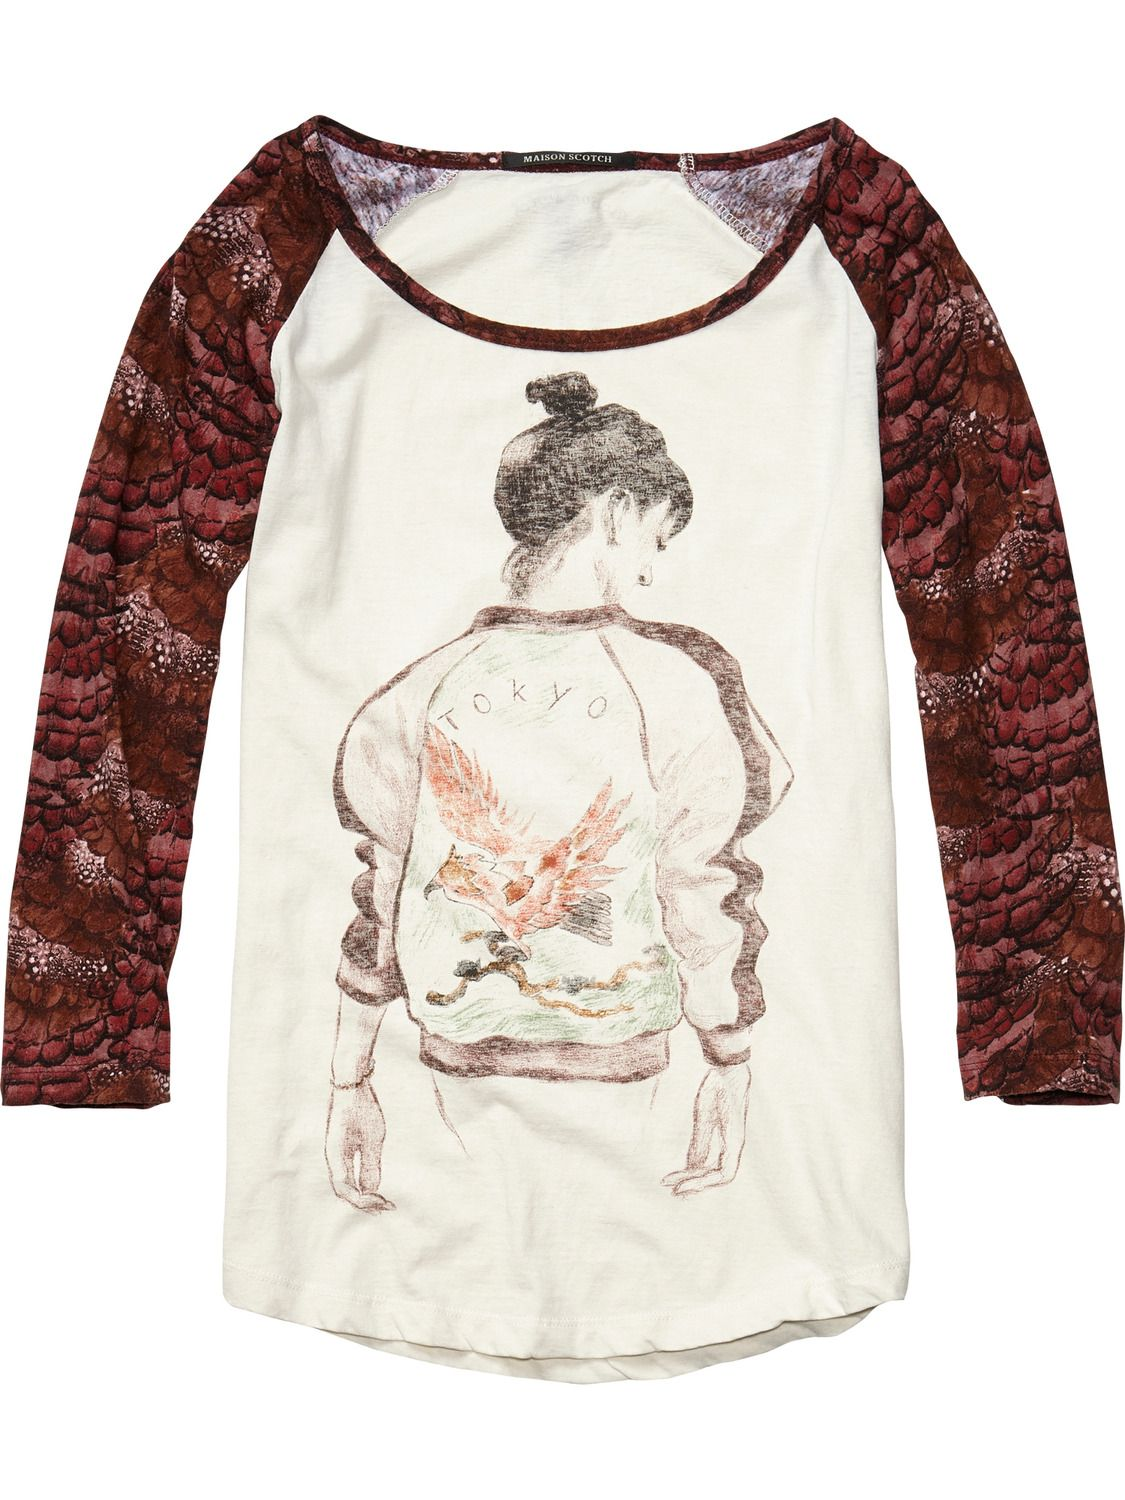 Cotton Linen Raglan Sleeve Tee With Street Style Artwork   Womens Clothing    Tops   T-shirts at Maison Scotch 533dbef21624